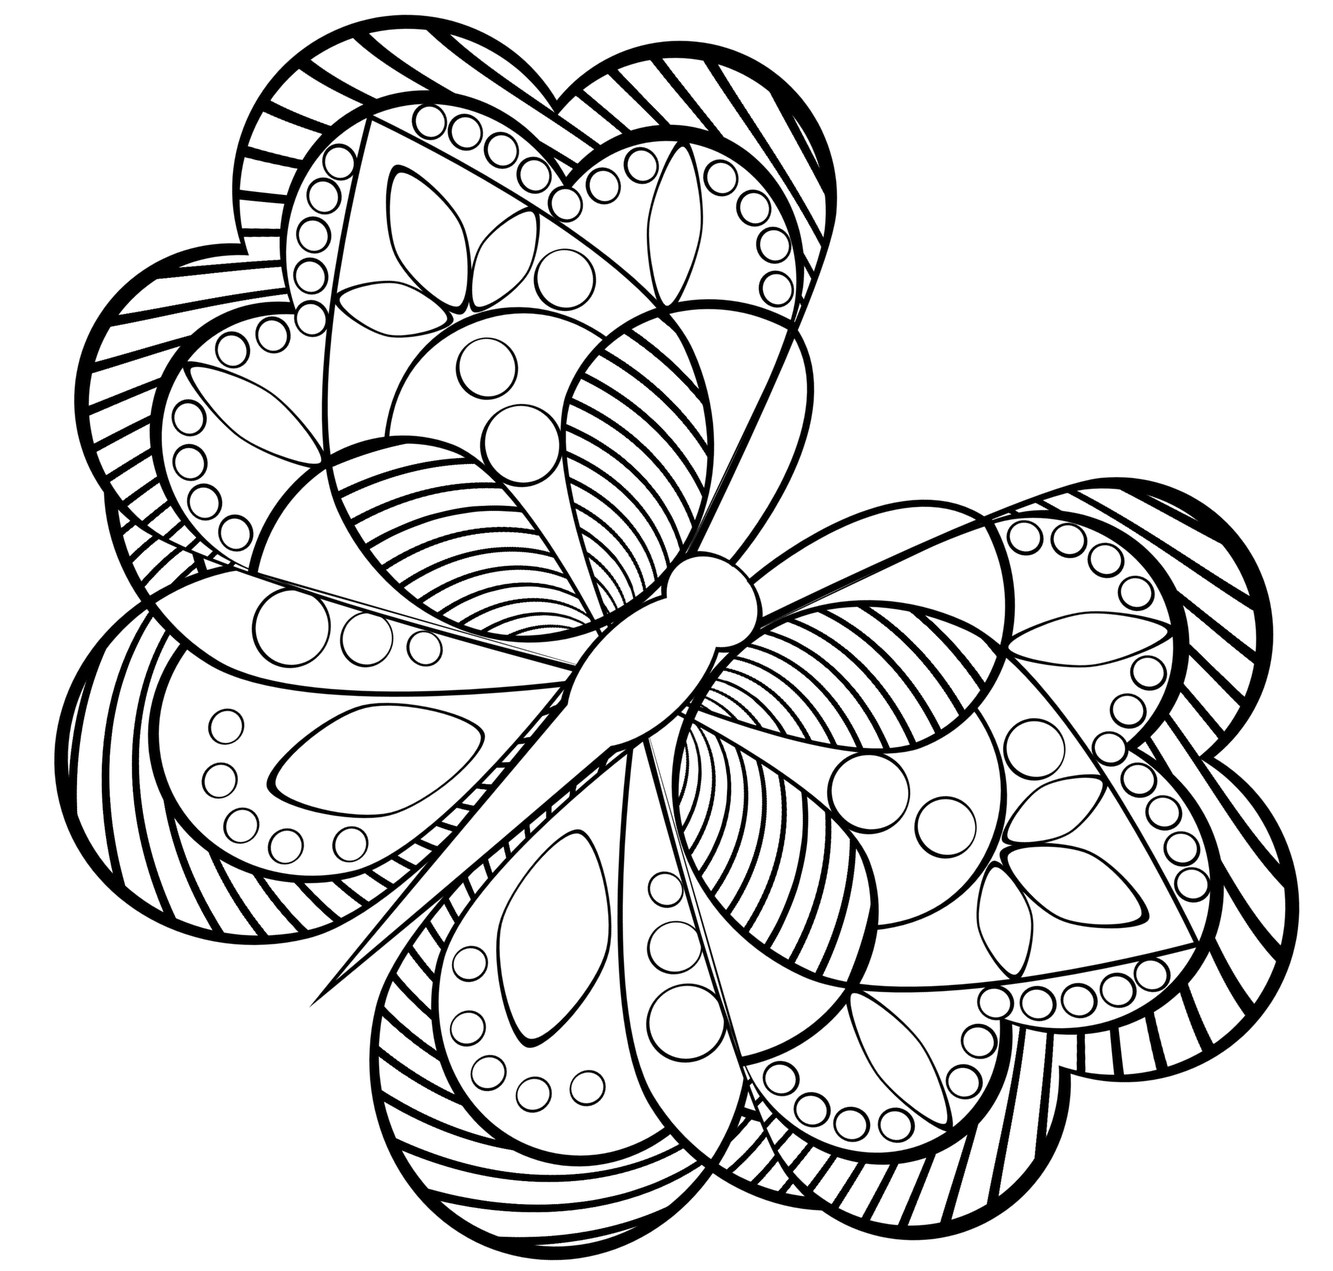 Best ideas about Free Printable Adult Coloring Pages . Save or Pin Free Coloring Pages For Adults To Print Special Image 12 Now.